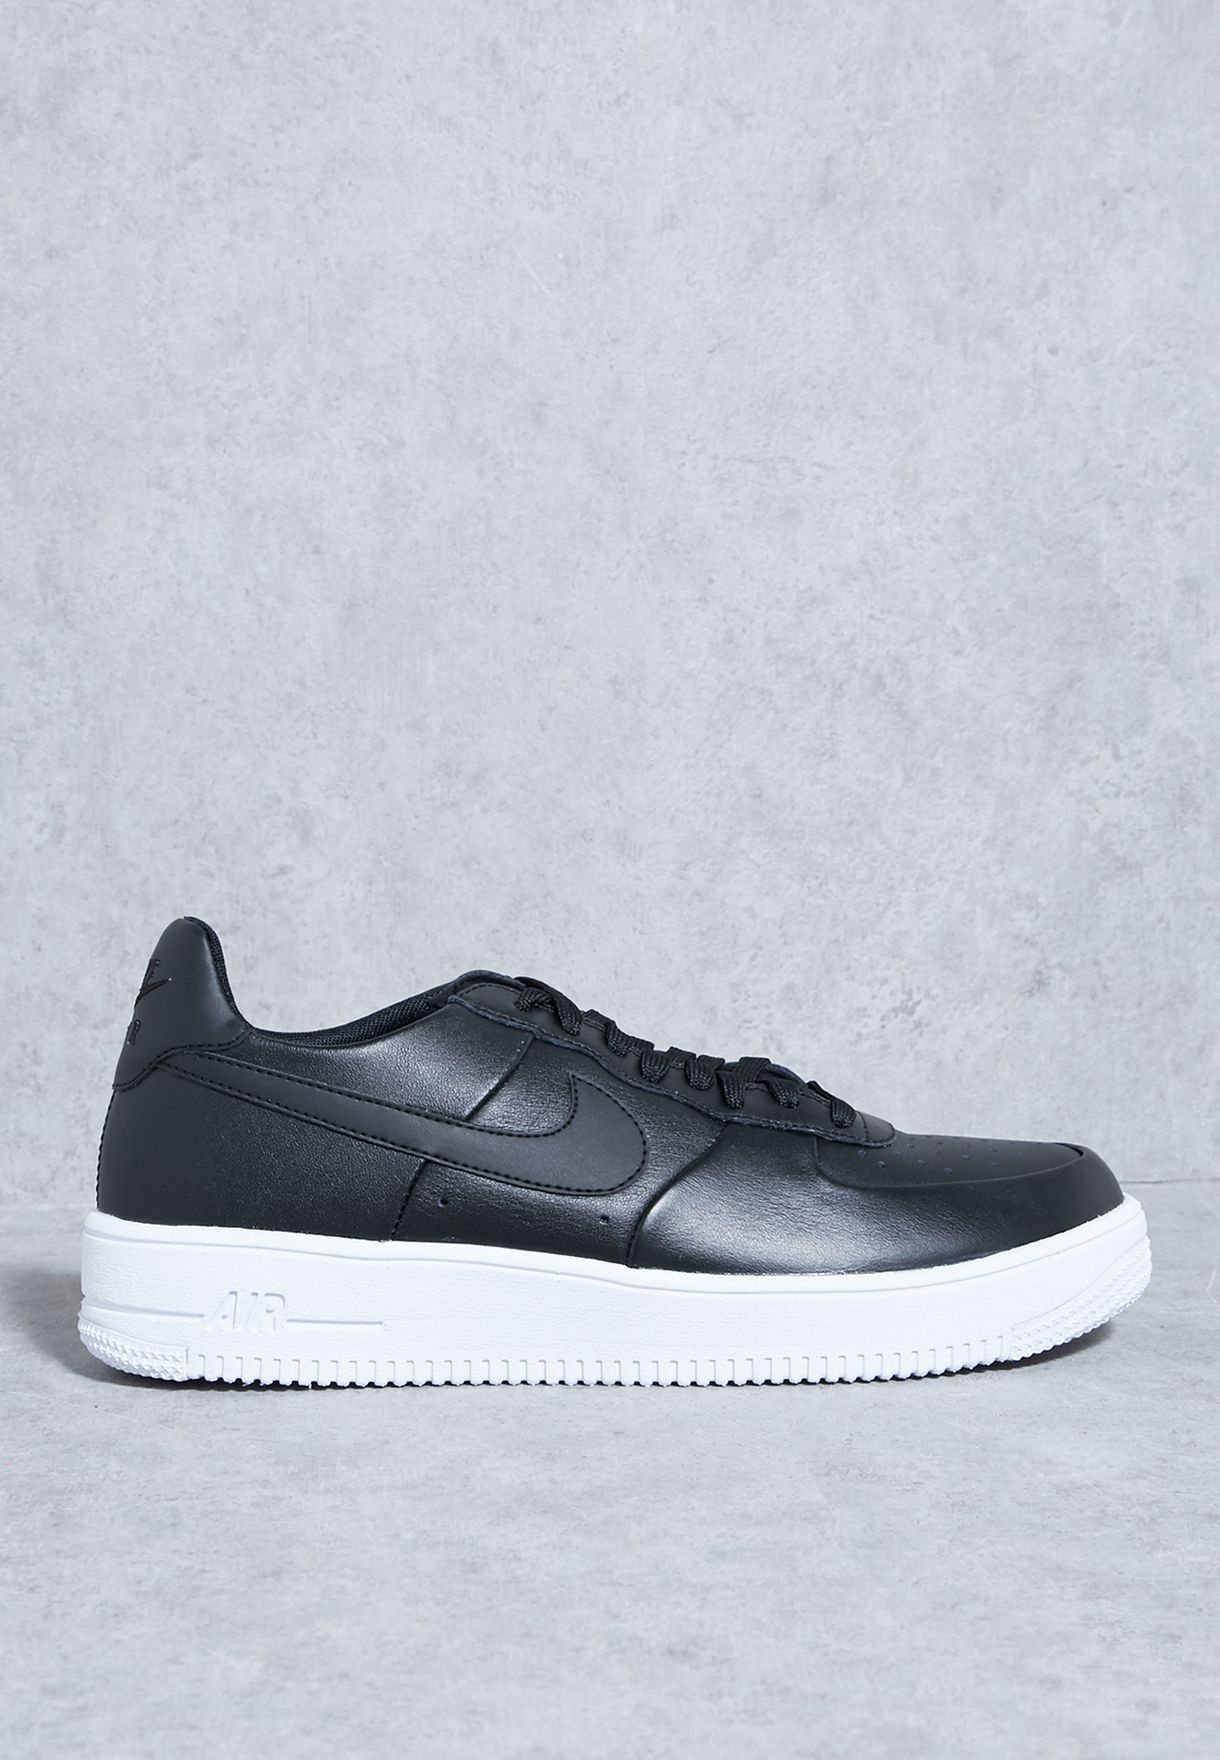 7ece5db885d Shop Nike black Air Force 1 Ultraforce Leather 845052-001 for Men in  Bahrain - NI727SH73ZFI